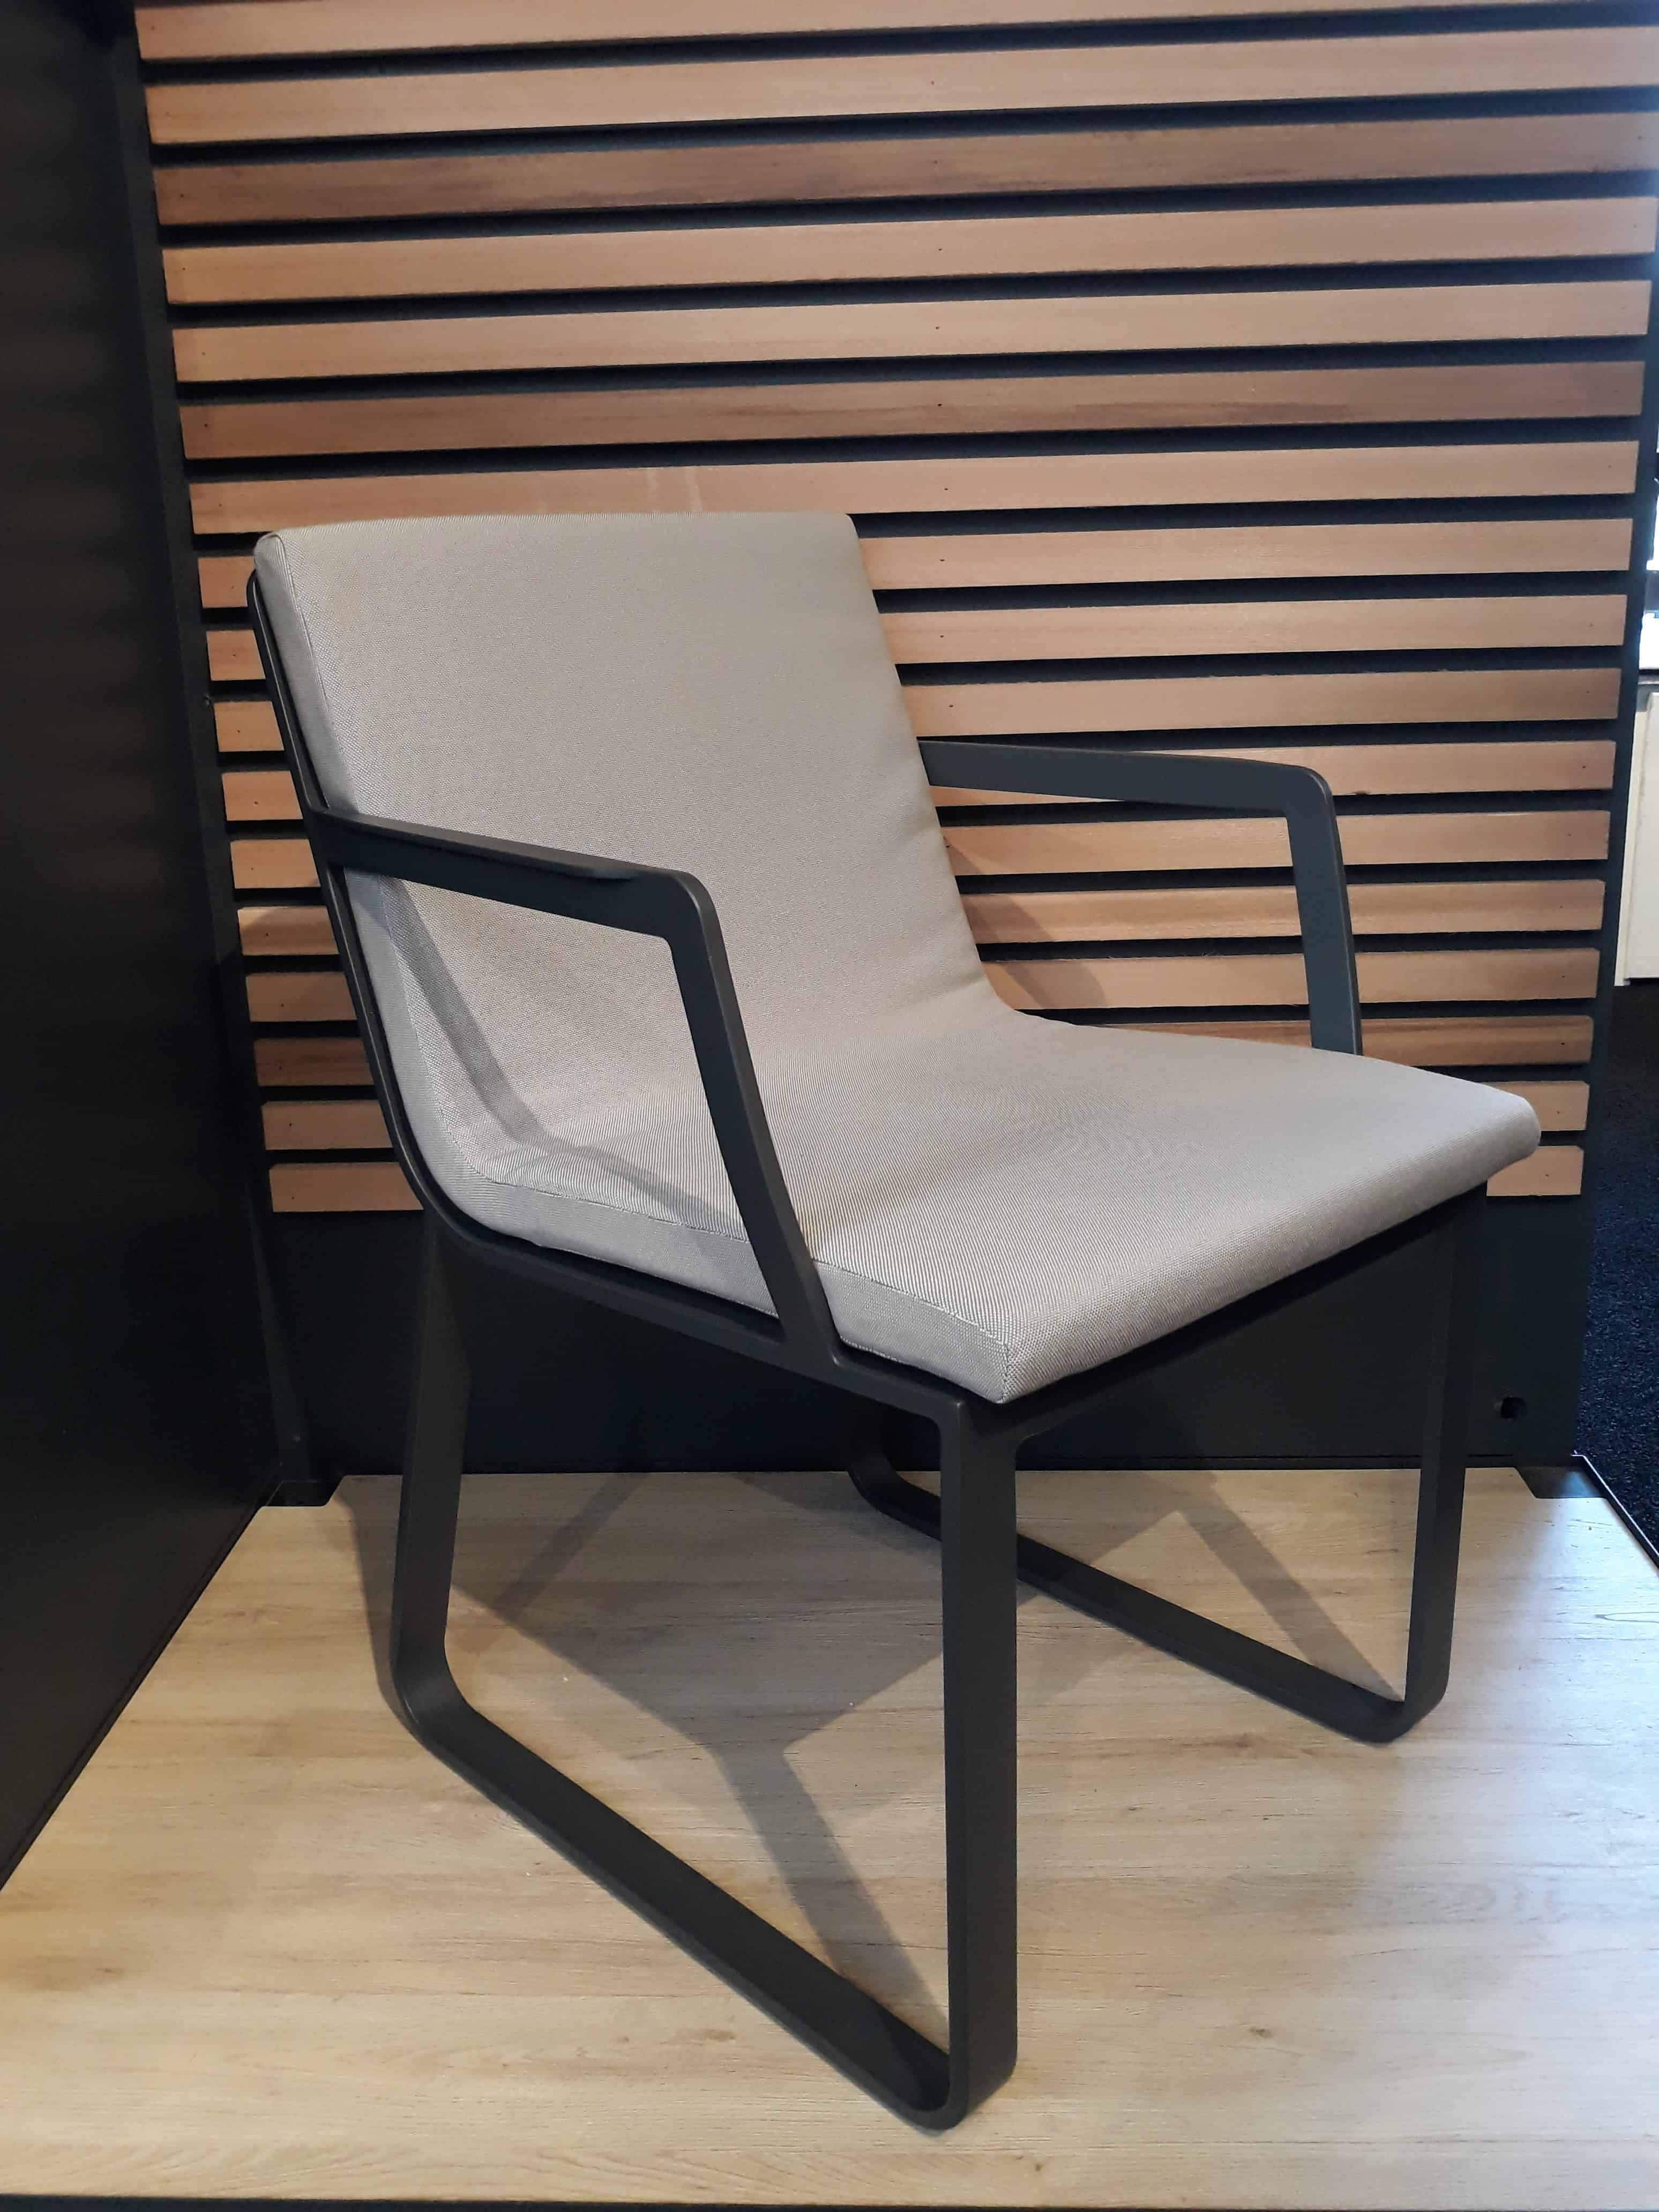 Fano 6 seater charcoal chair outdoor furniture for sale dublin ireland